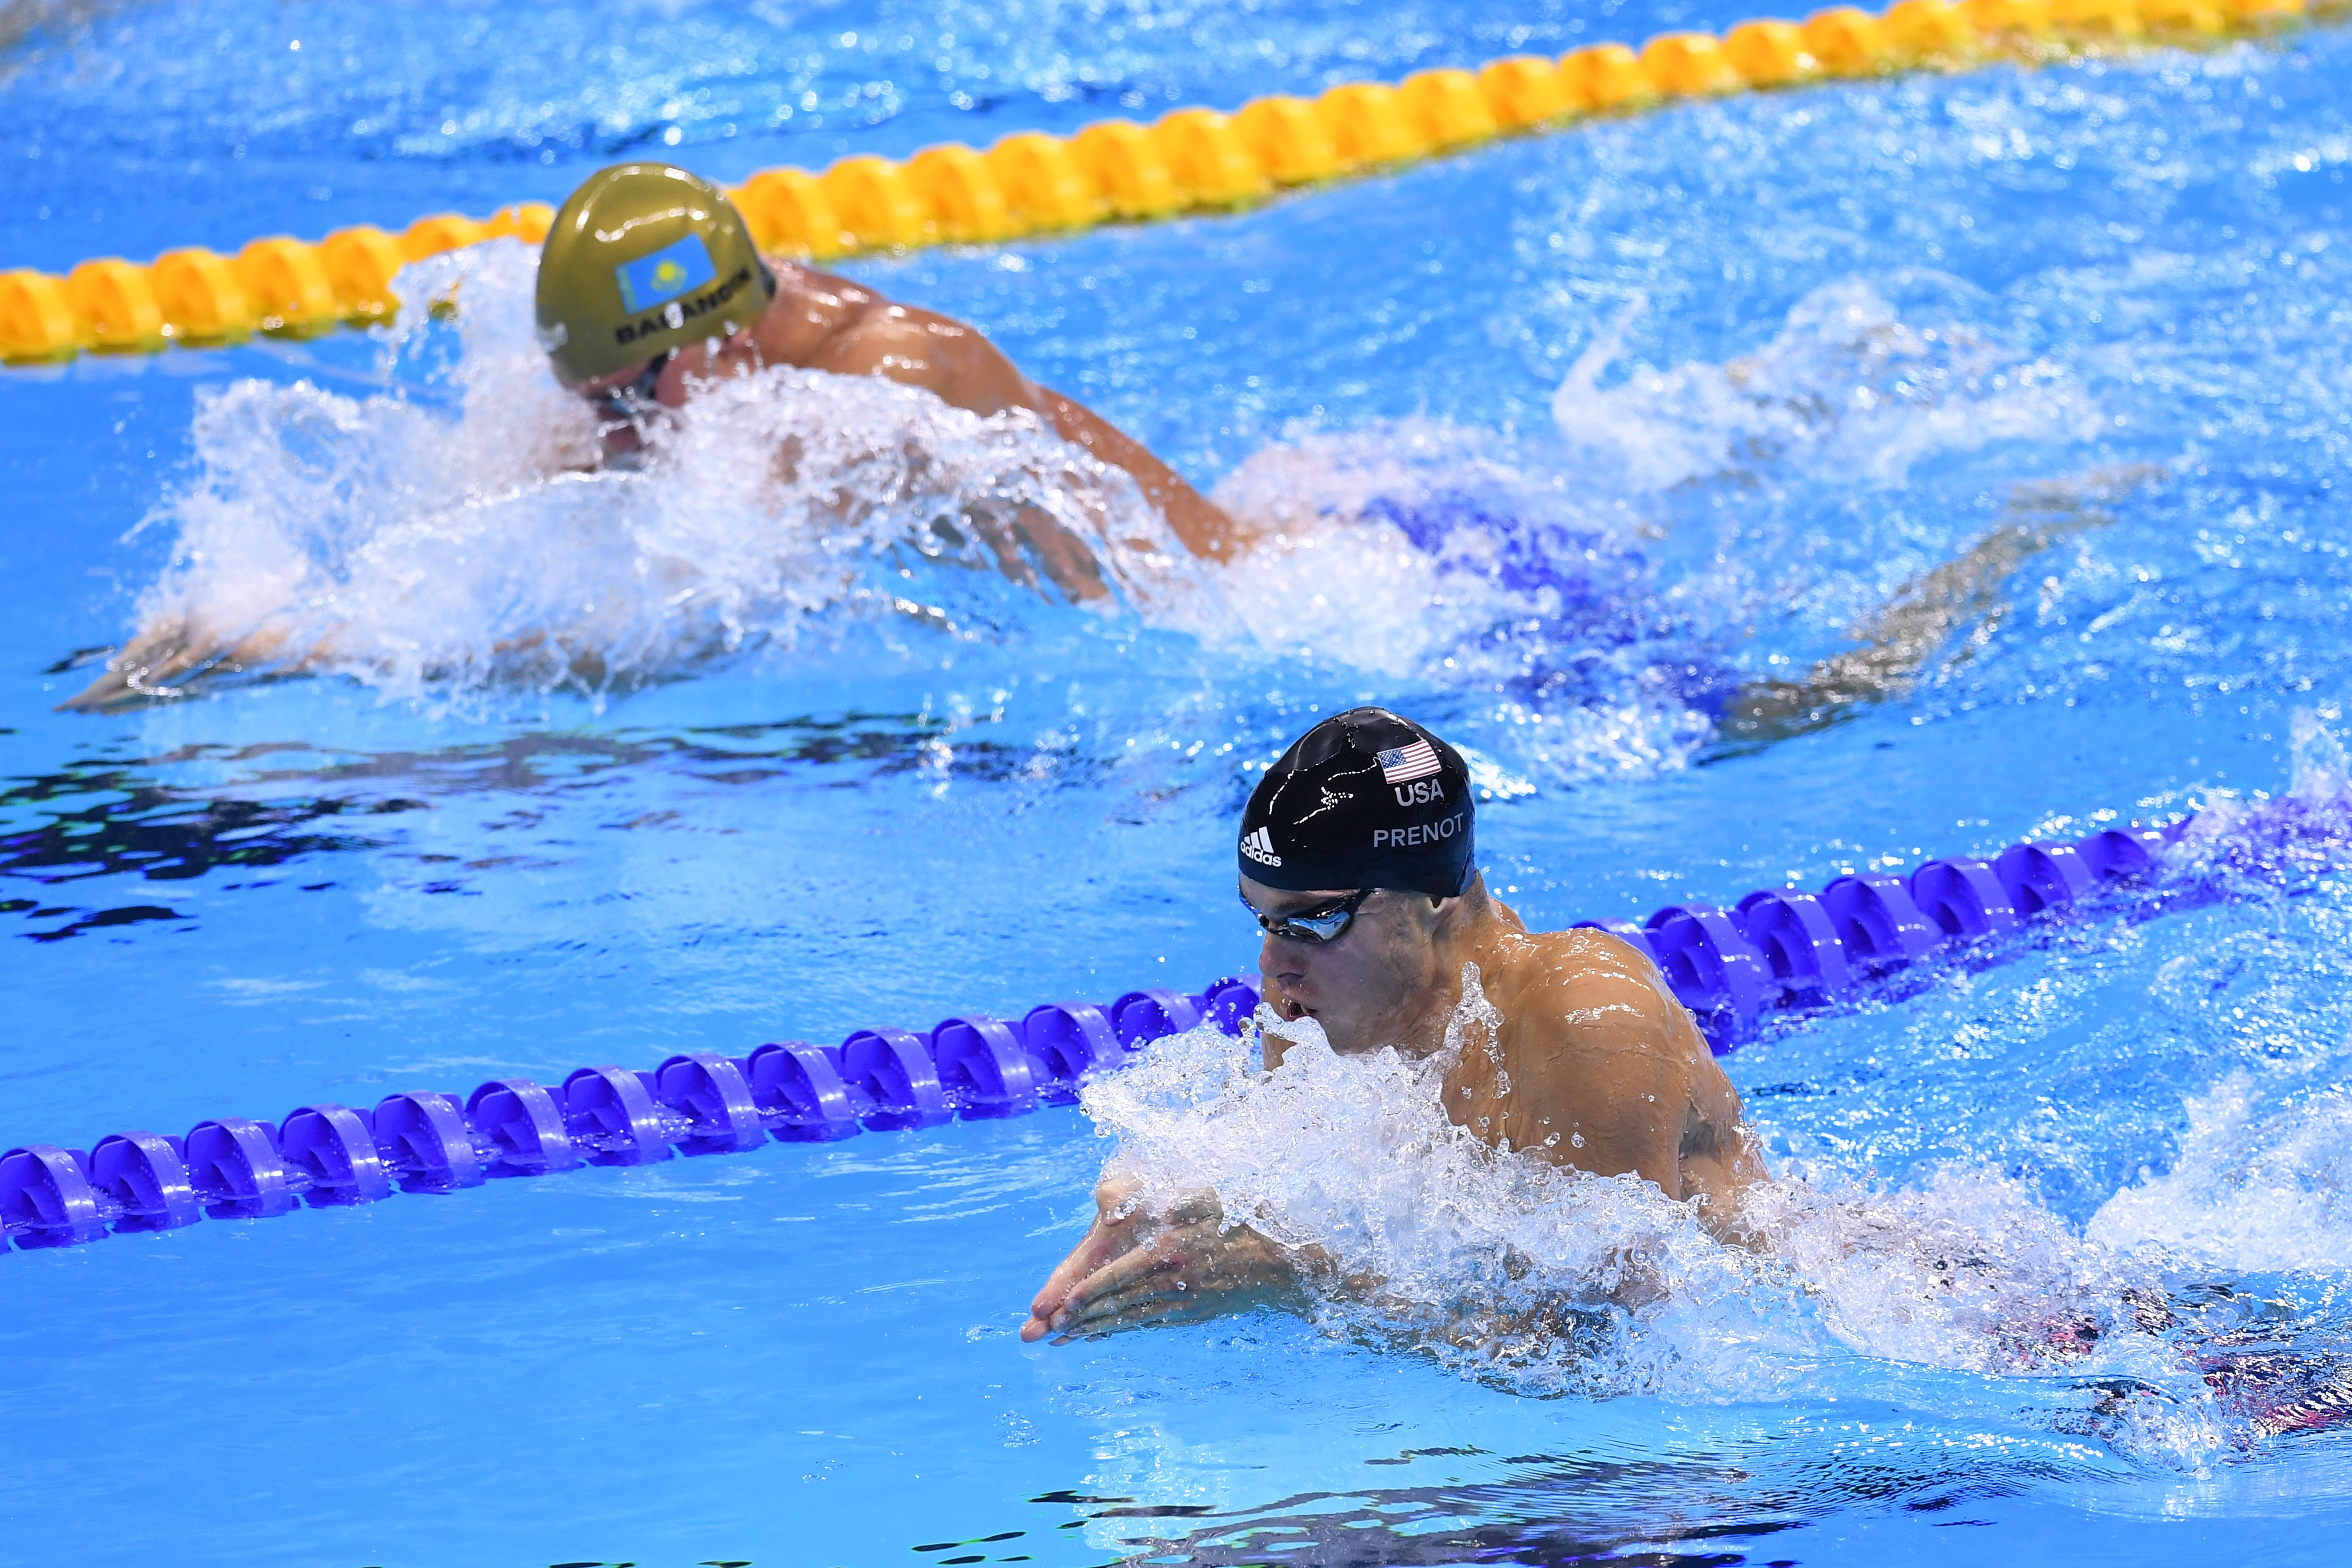 Amazing 2016 940pm Edt August 10 2016 923pm Edt News Swimming English Olympics Rio  2016 With All Eight Swimmers In The Mens 200 Breaststroke Within 120